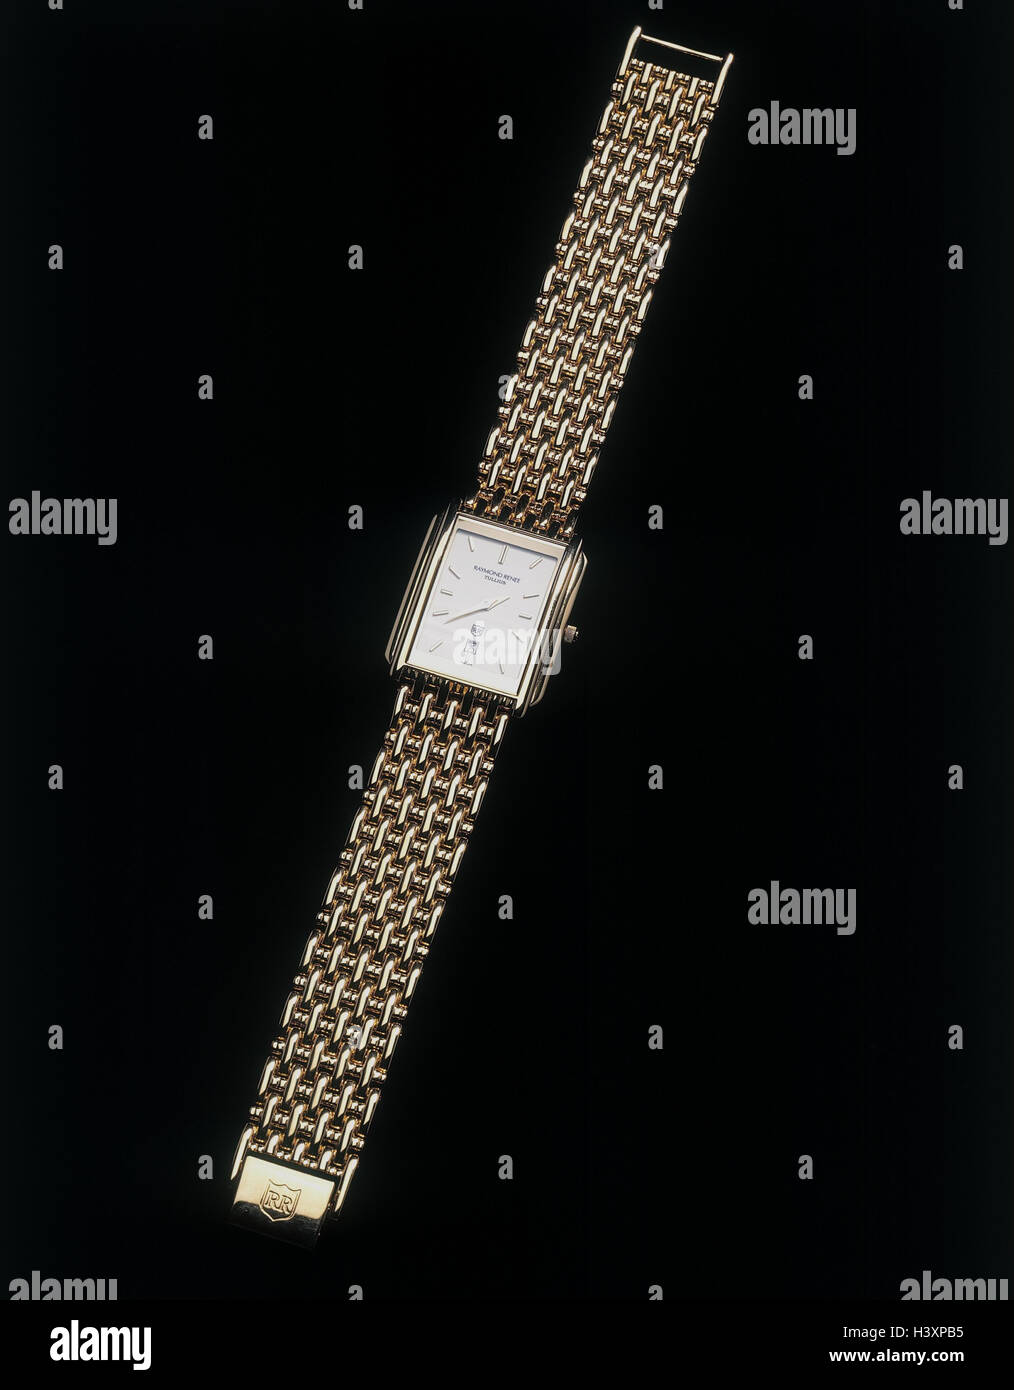 Wristwatch, golden, clock, chain bracelet, pointer, time, minute, hour, time measurement, time knife, punctuality, - Stock Image